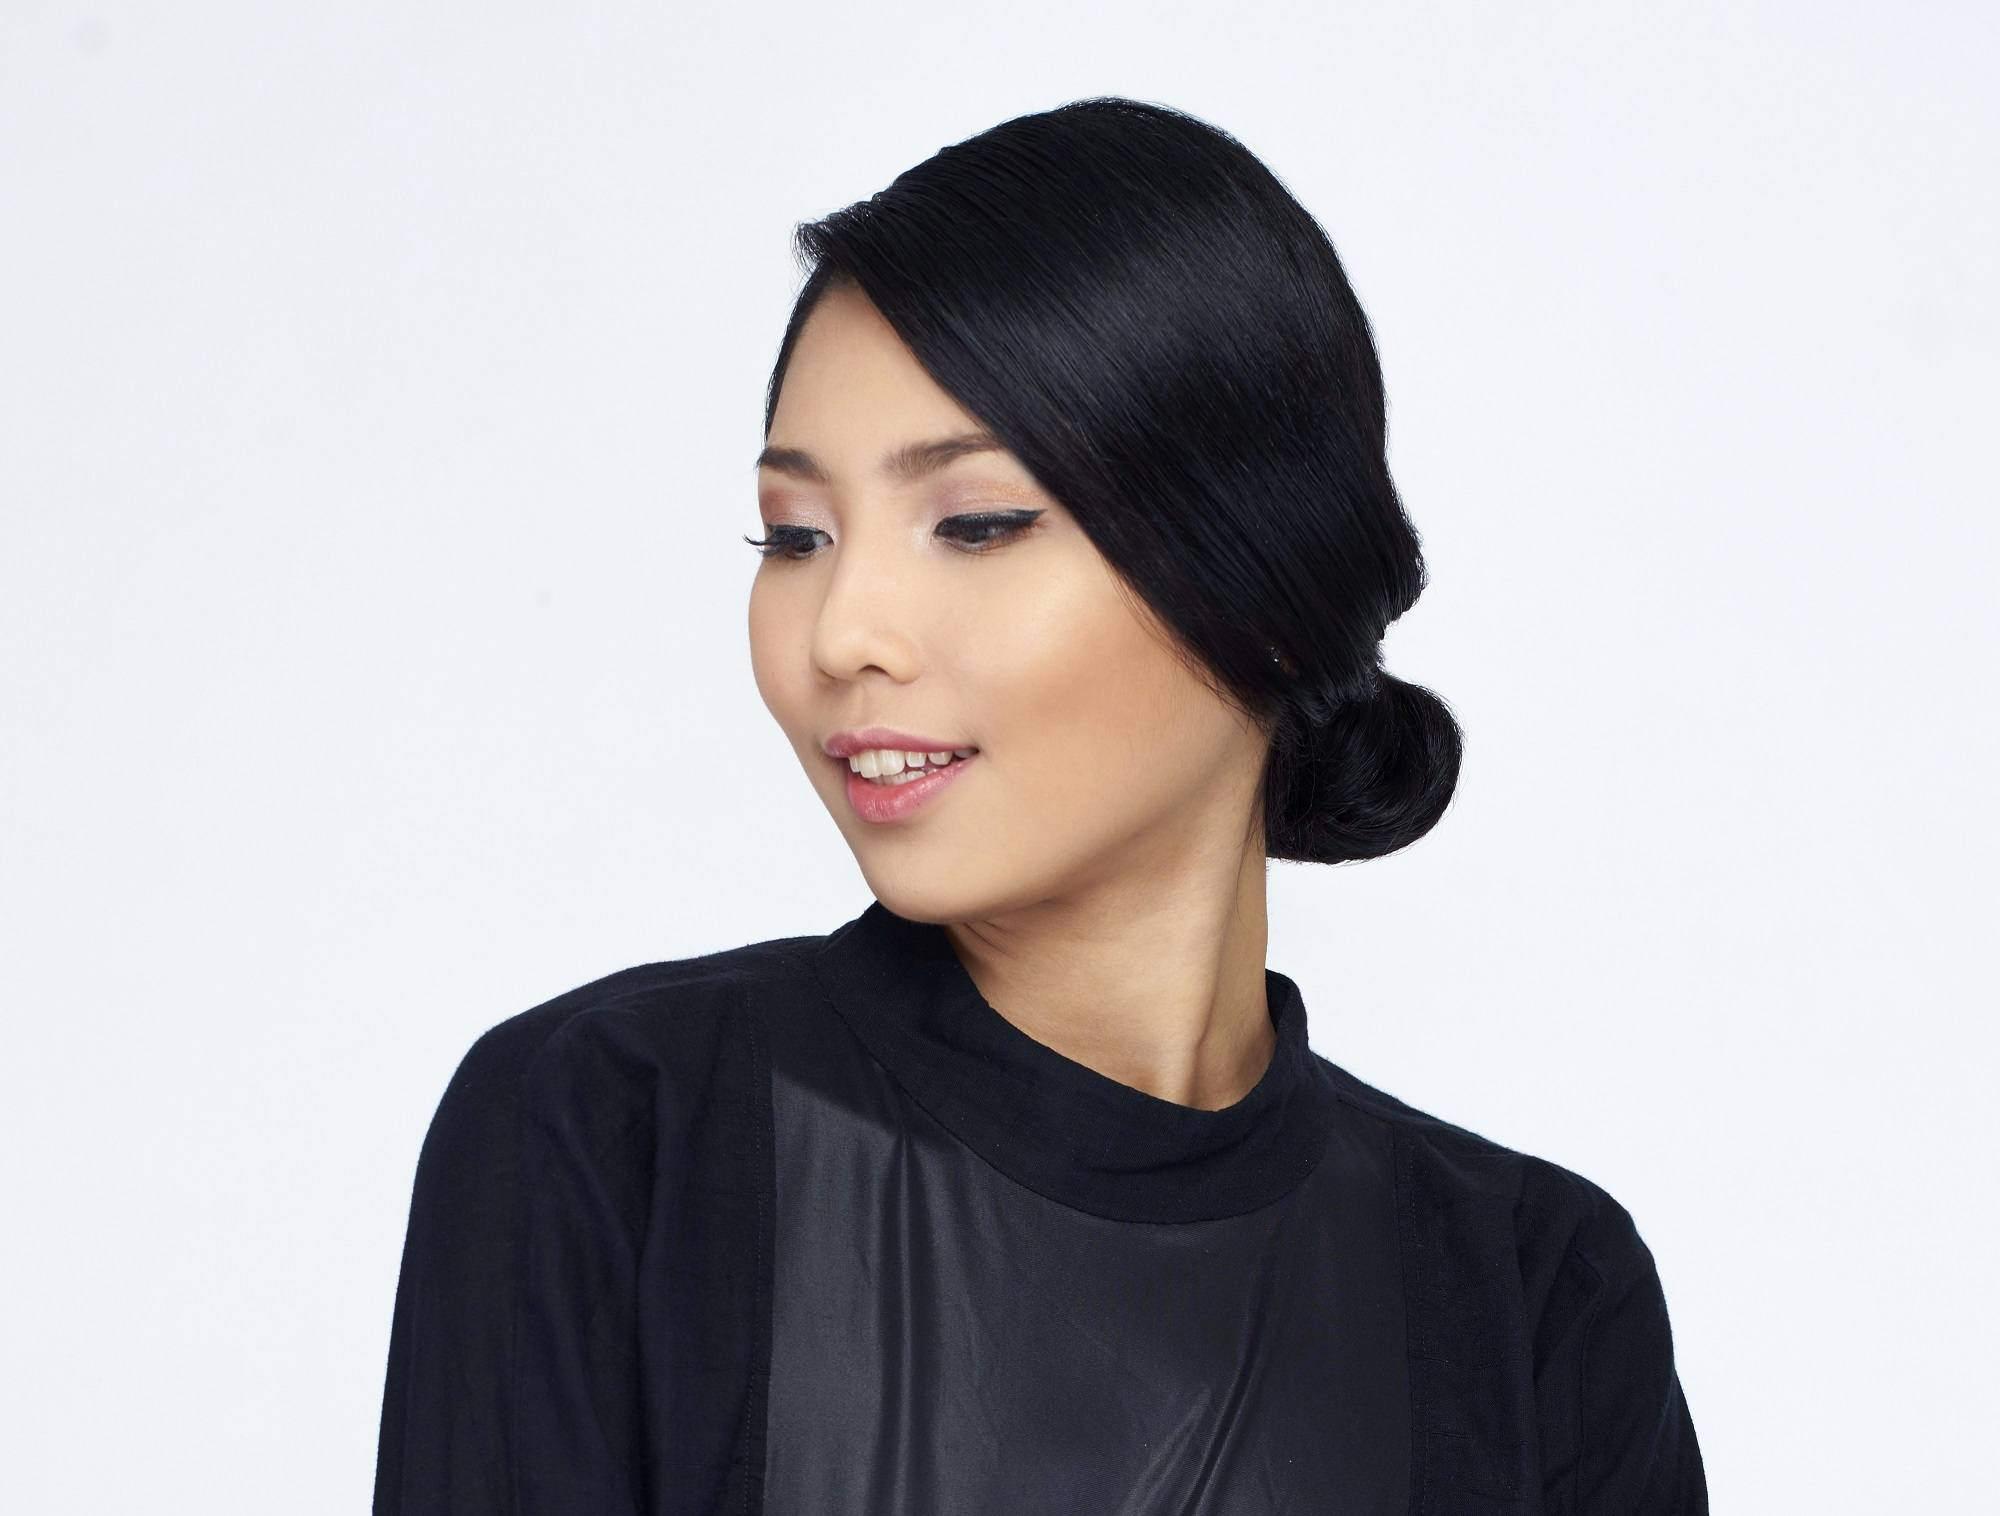 Christmas party hairstyles: Closeup shot of an Asian woman with black hair in chignon wearing a black dress